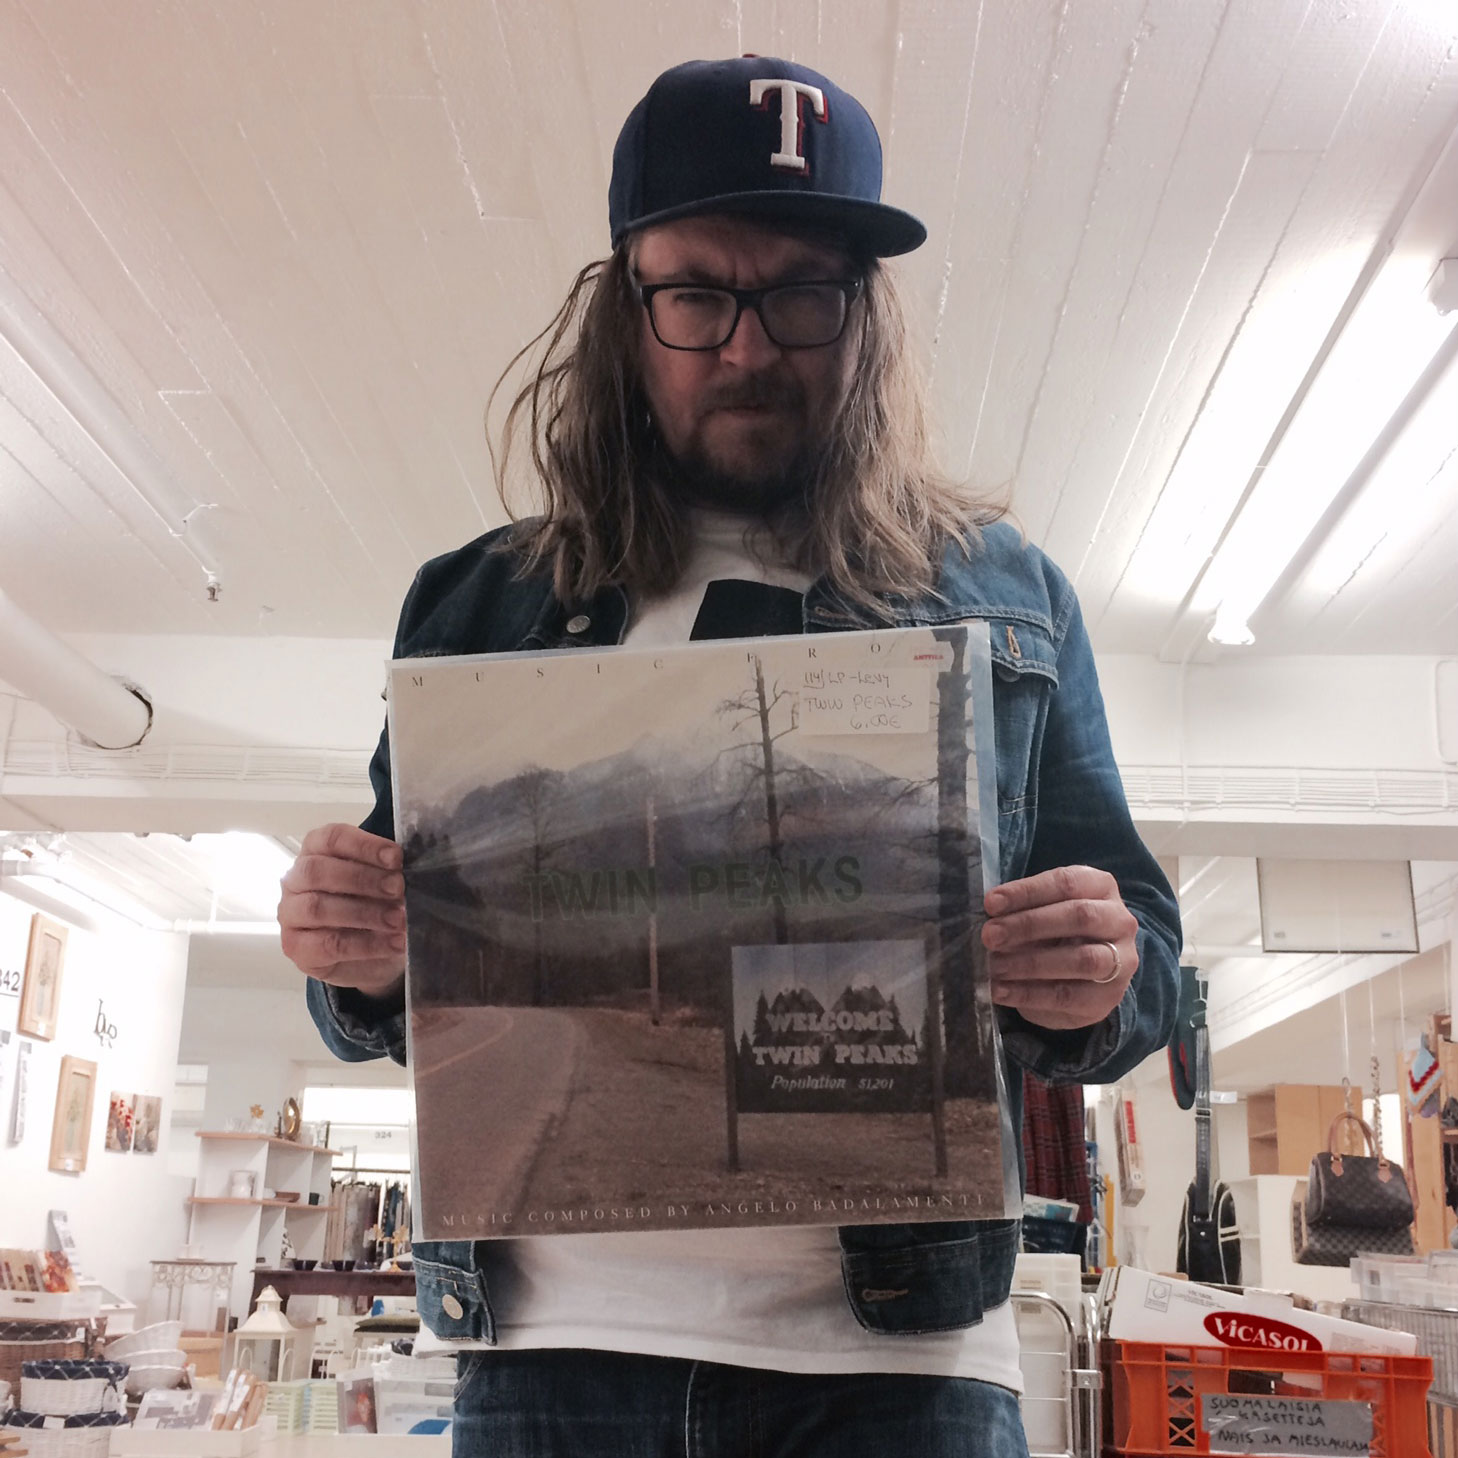 The author holding a copy of the Twin Peaks soundtrack.